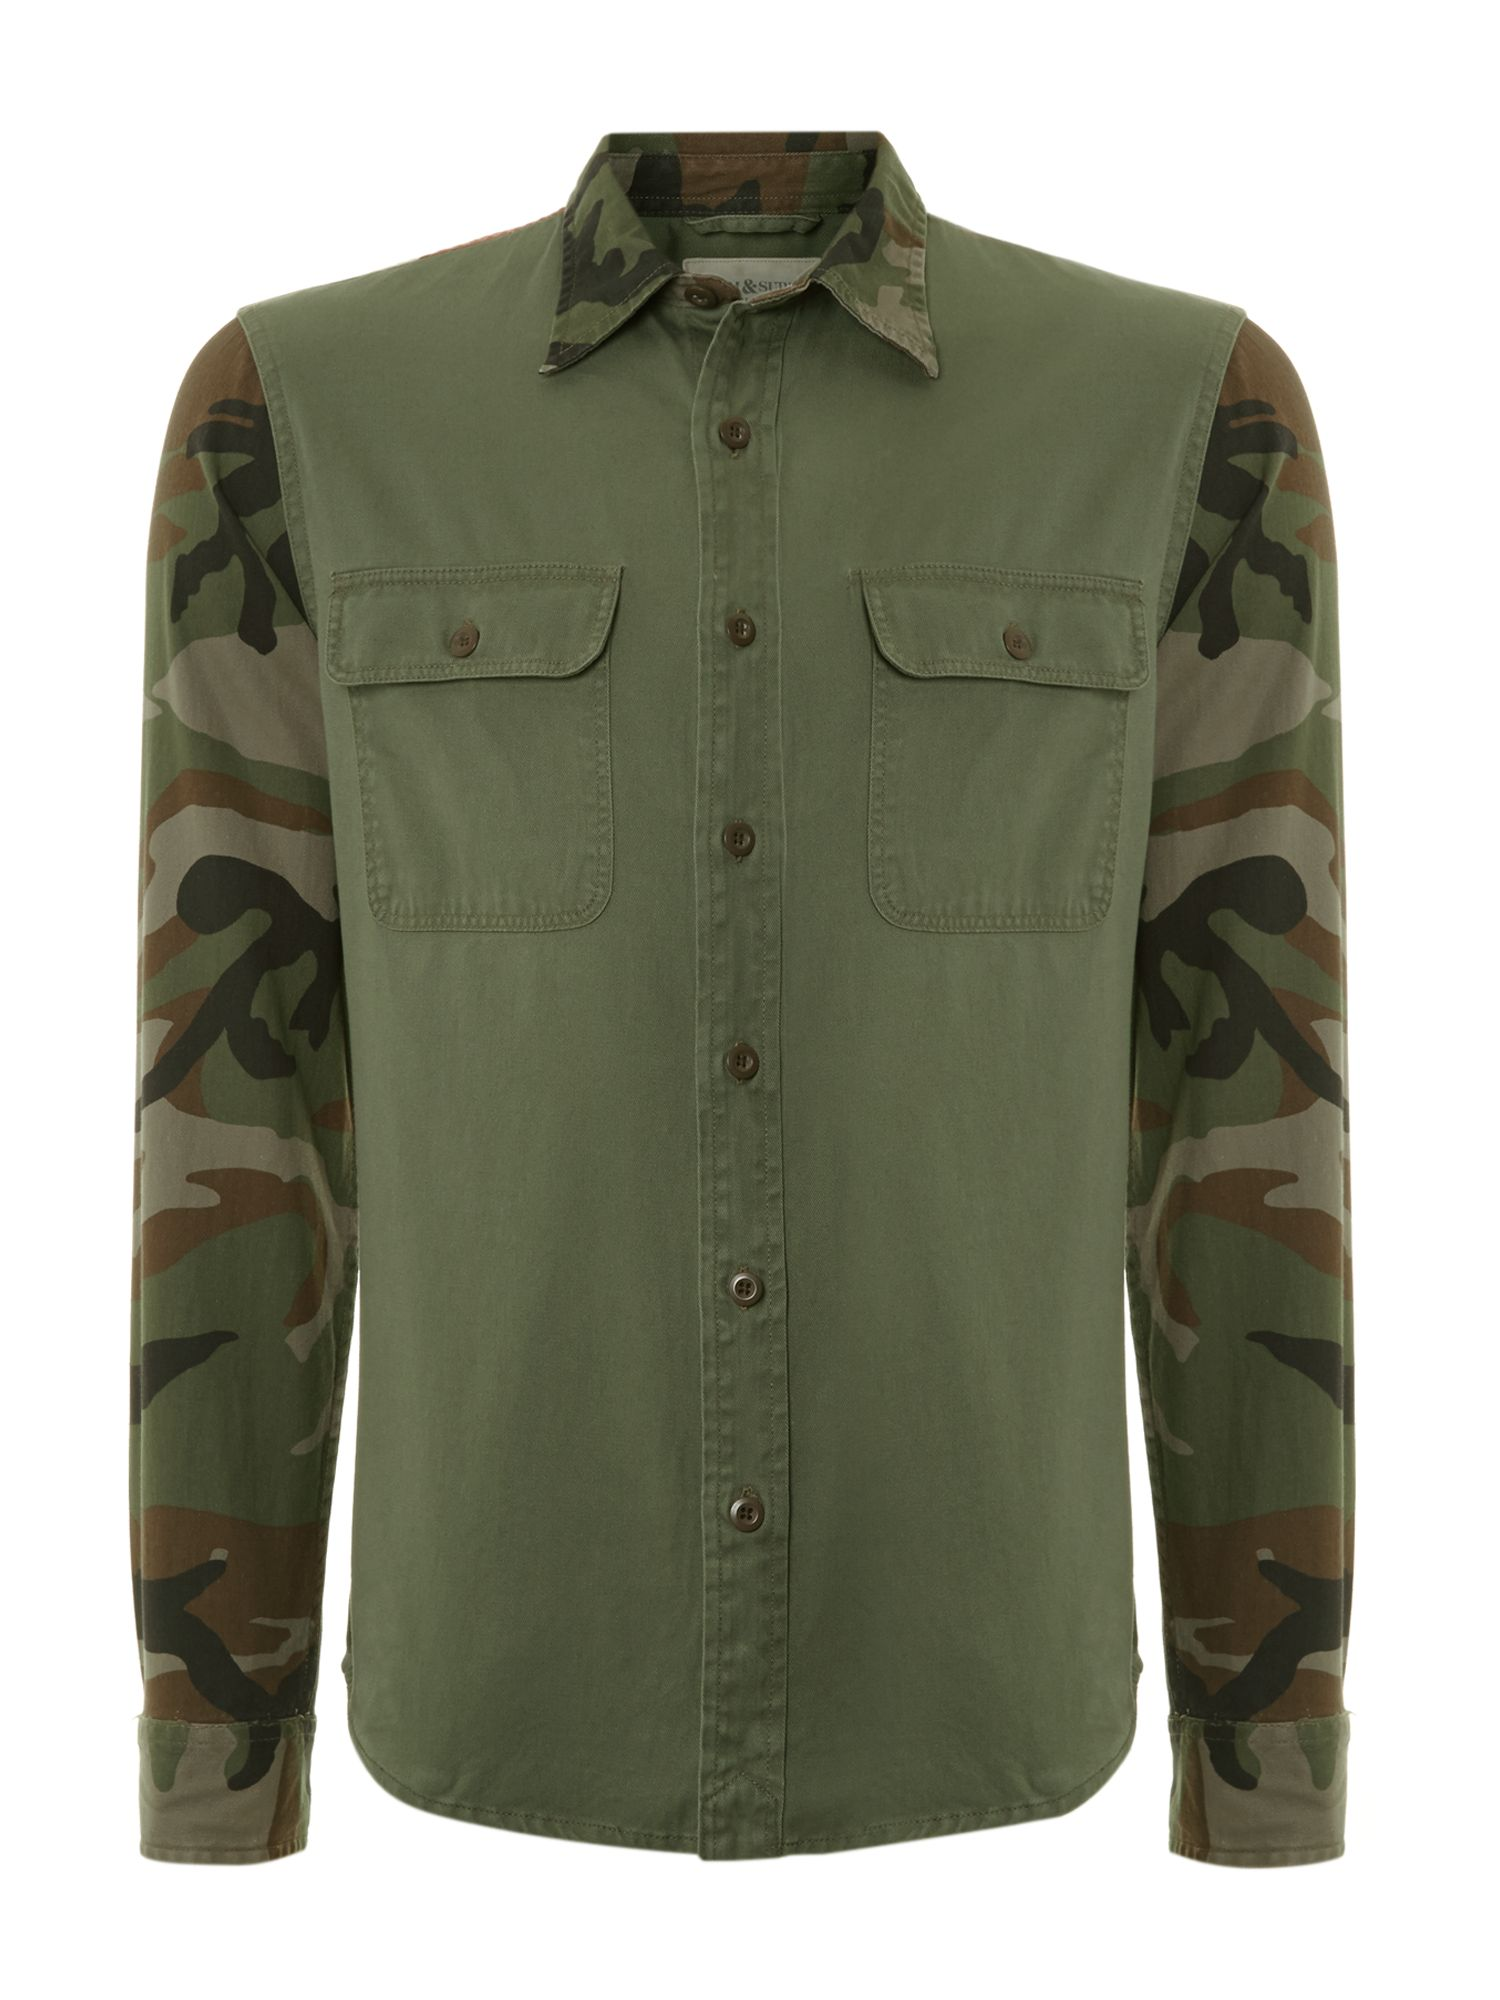 Long sleeve flag and camo shirt